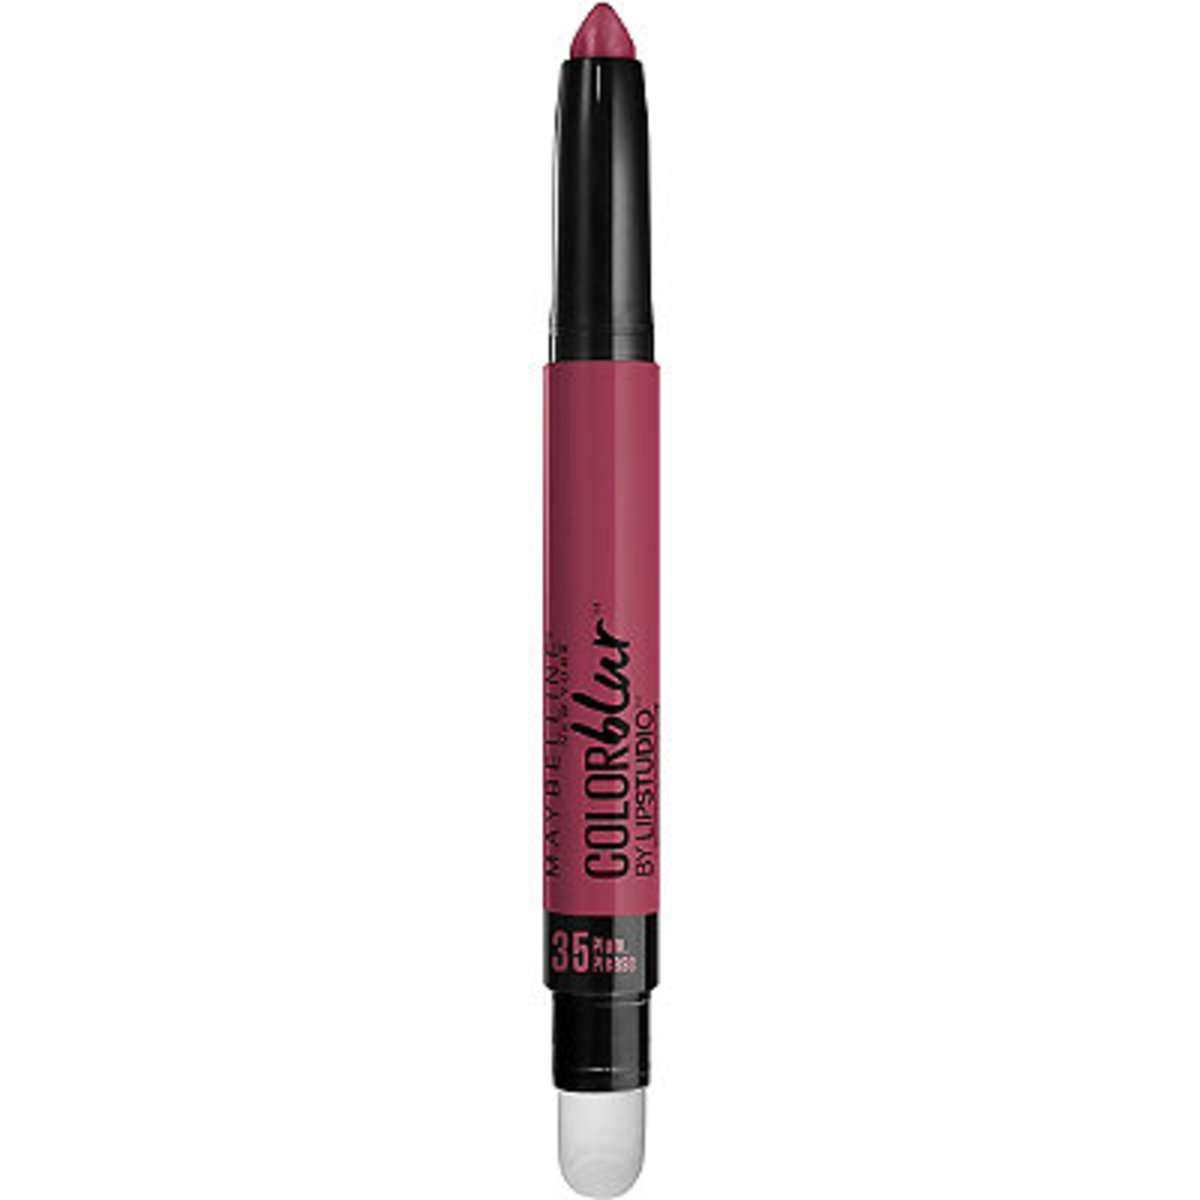 Maybelline Color Blur lip pencil in Plum, Please, $8.99, available at Ulta.